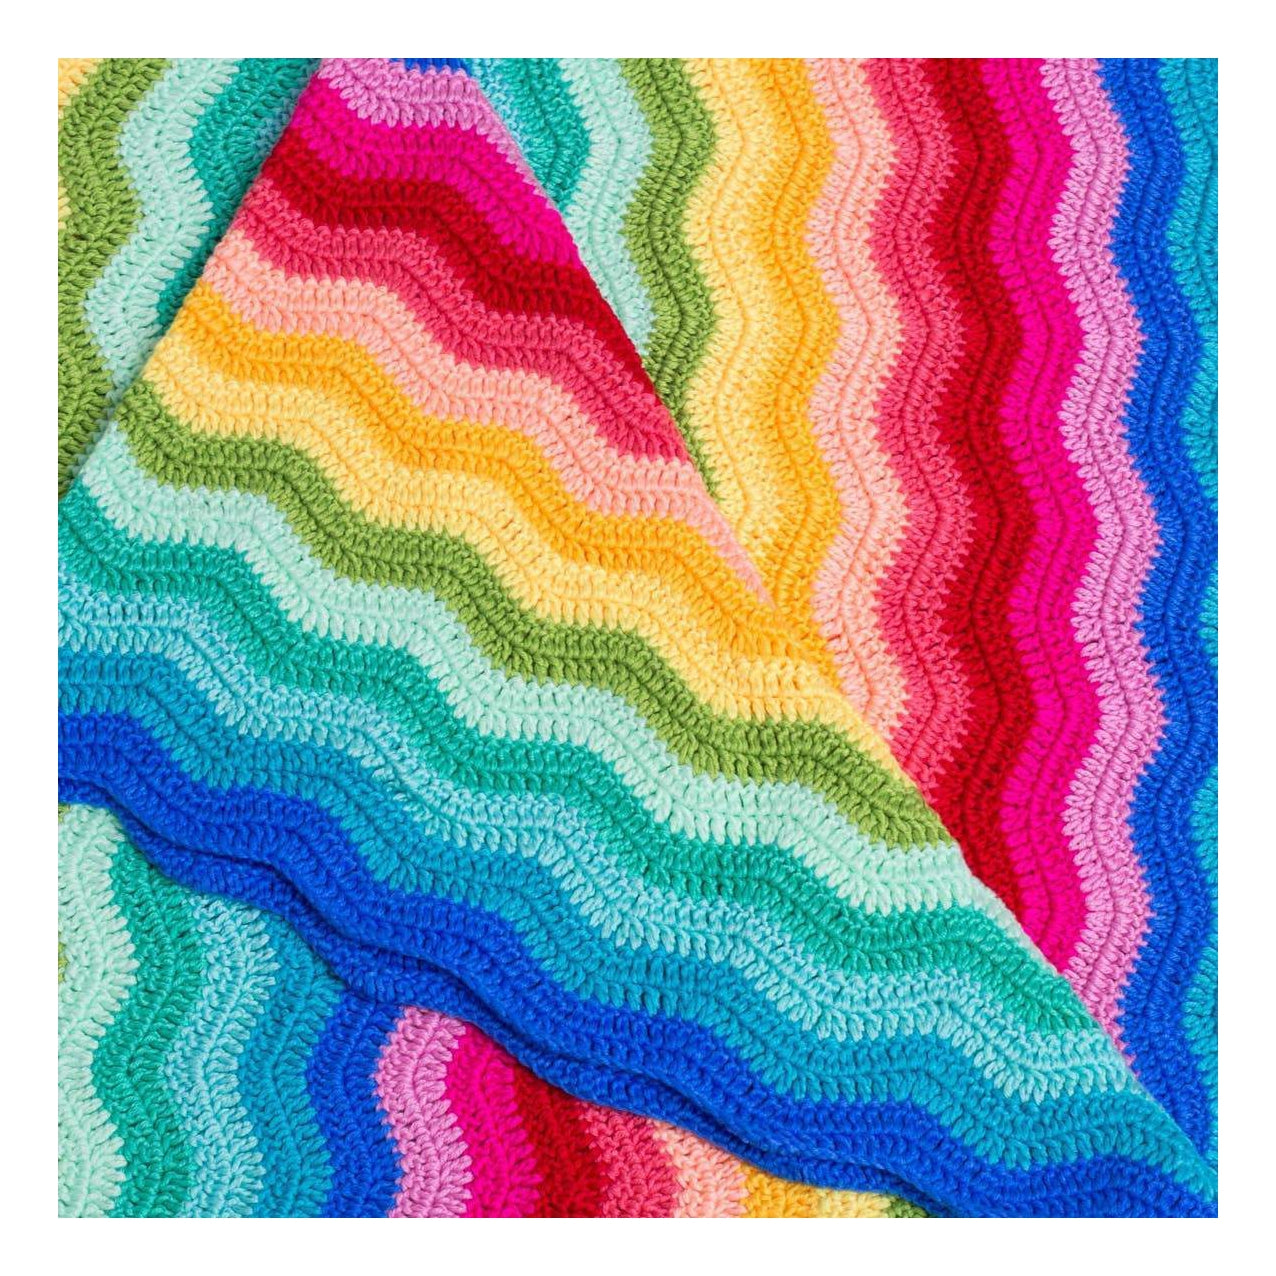 Artisan Rainbow Ripple Blanket